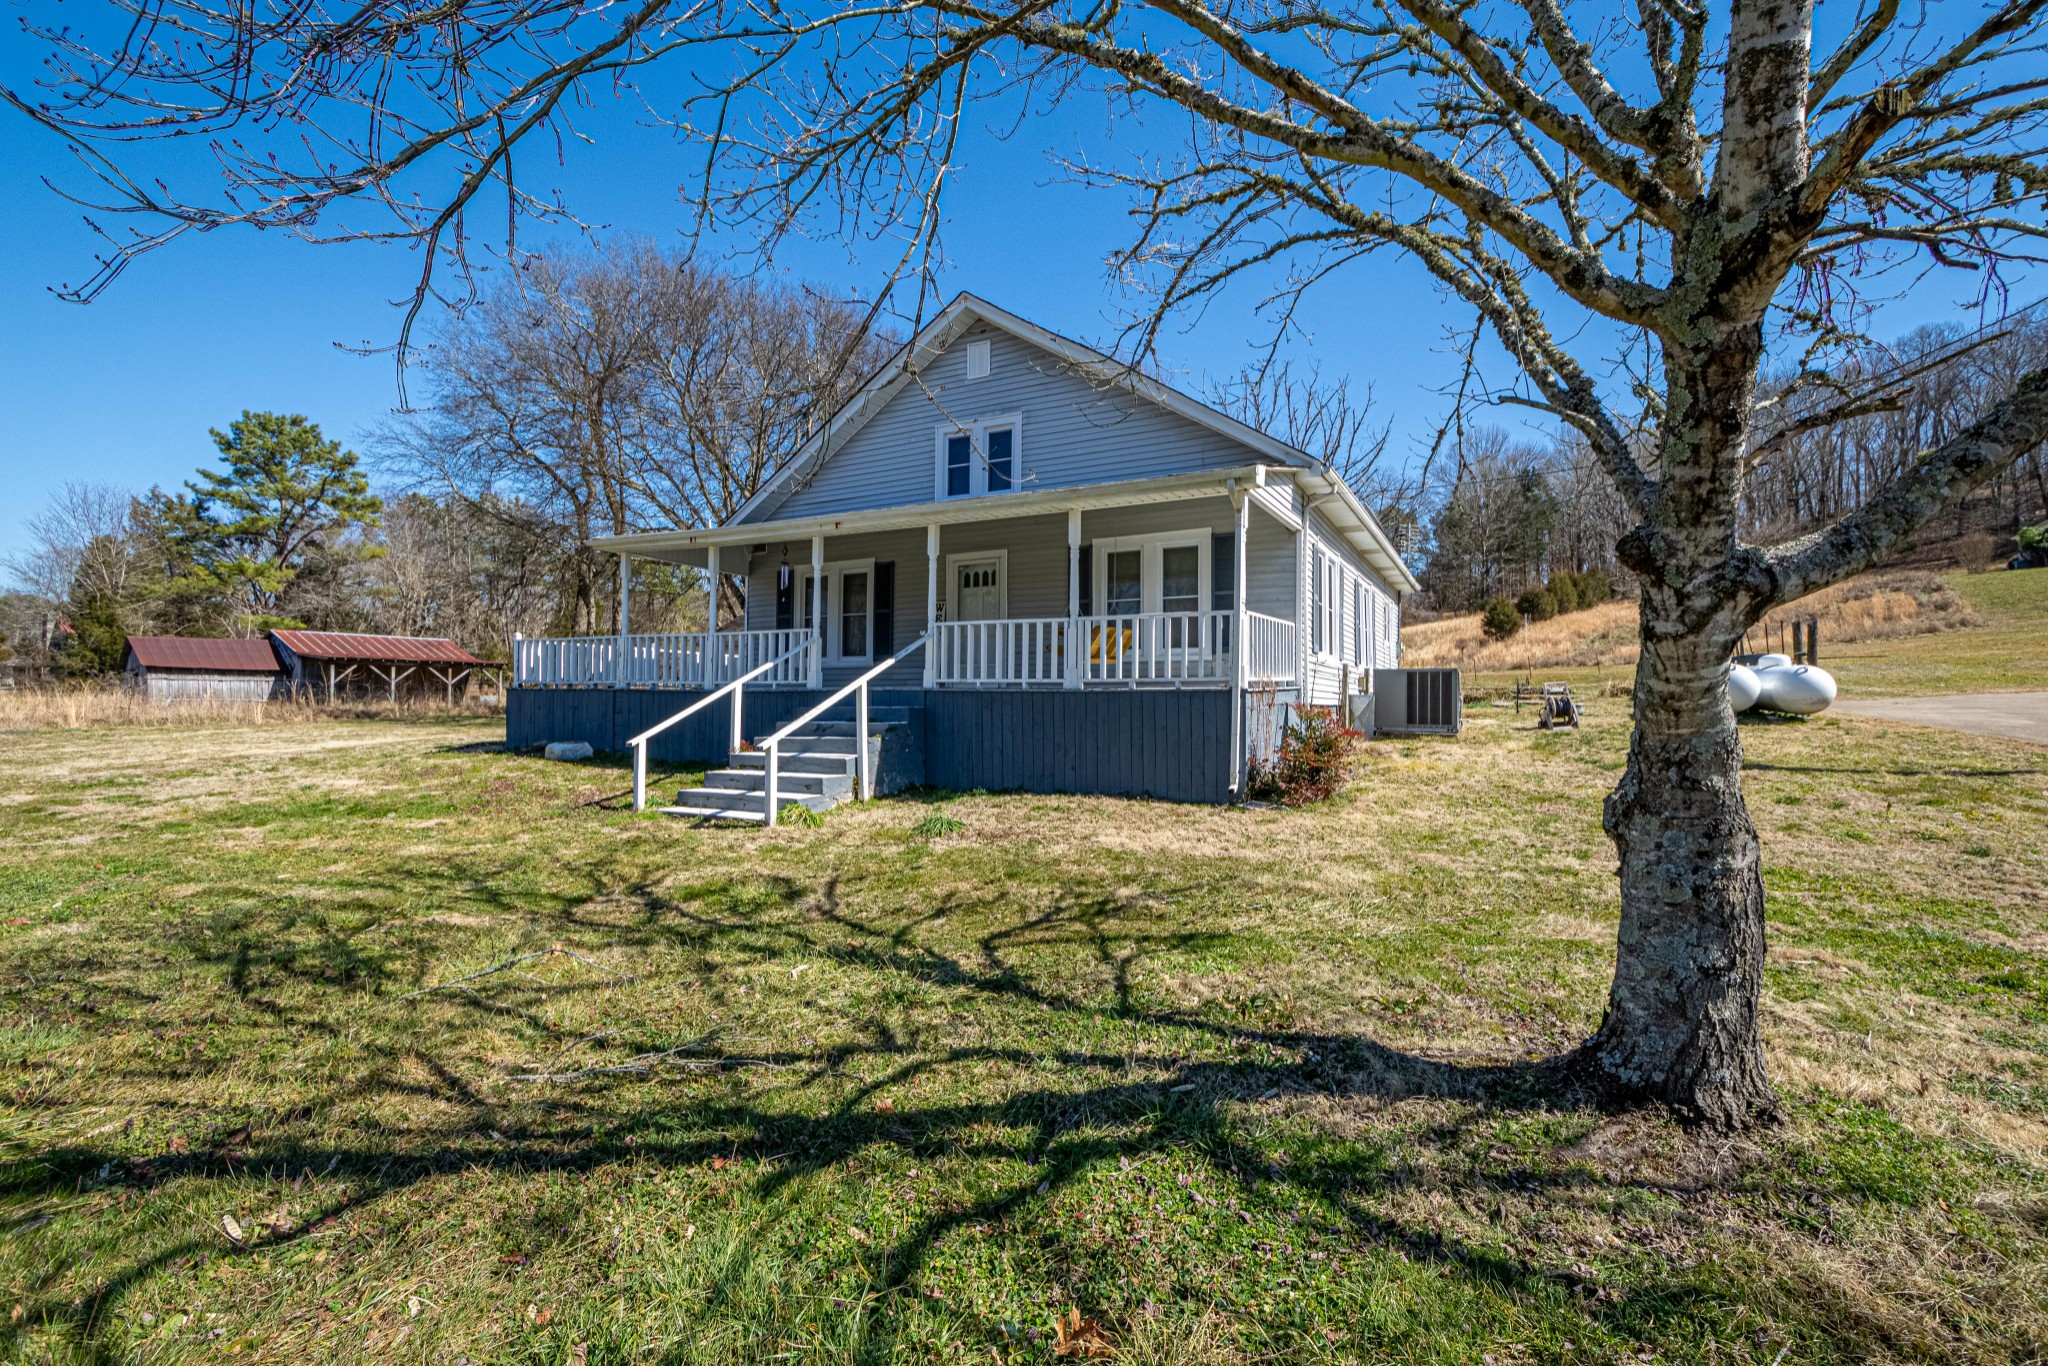 9263 Bethel Rd, Pulaski, Tennessee 38478, 3 Bedrooms Bedrooms, ,2 BathroomsBathrooms,Single Family,For Sale,9263 Bethel Rd,2,2230811